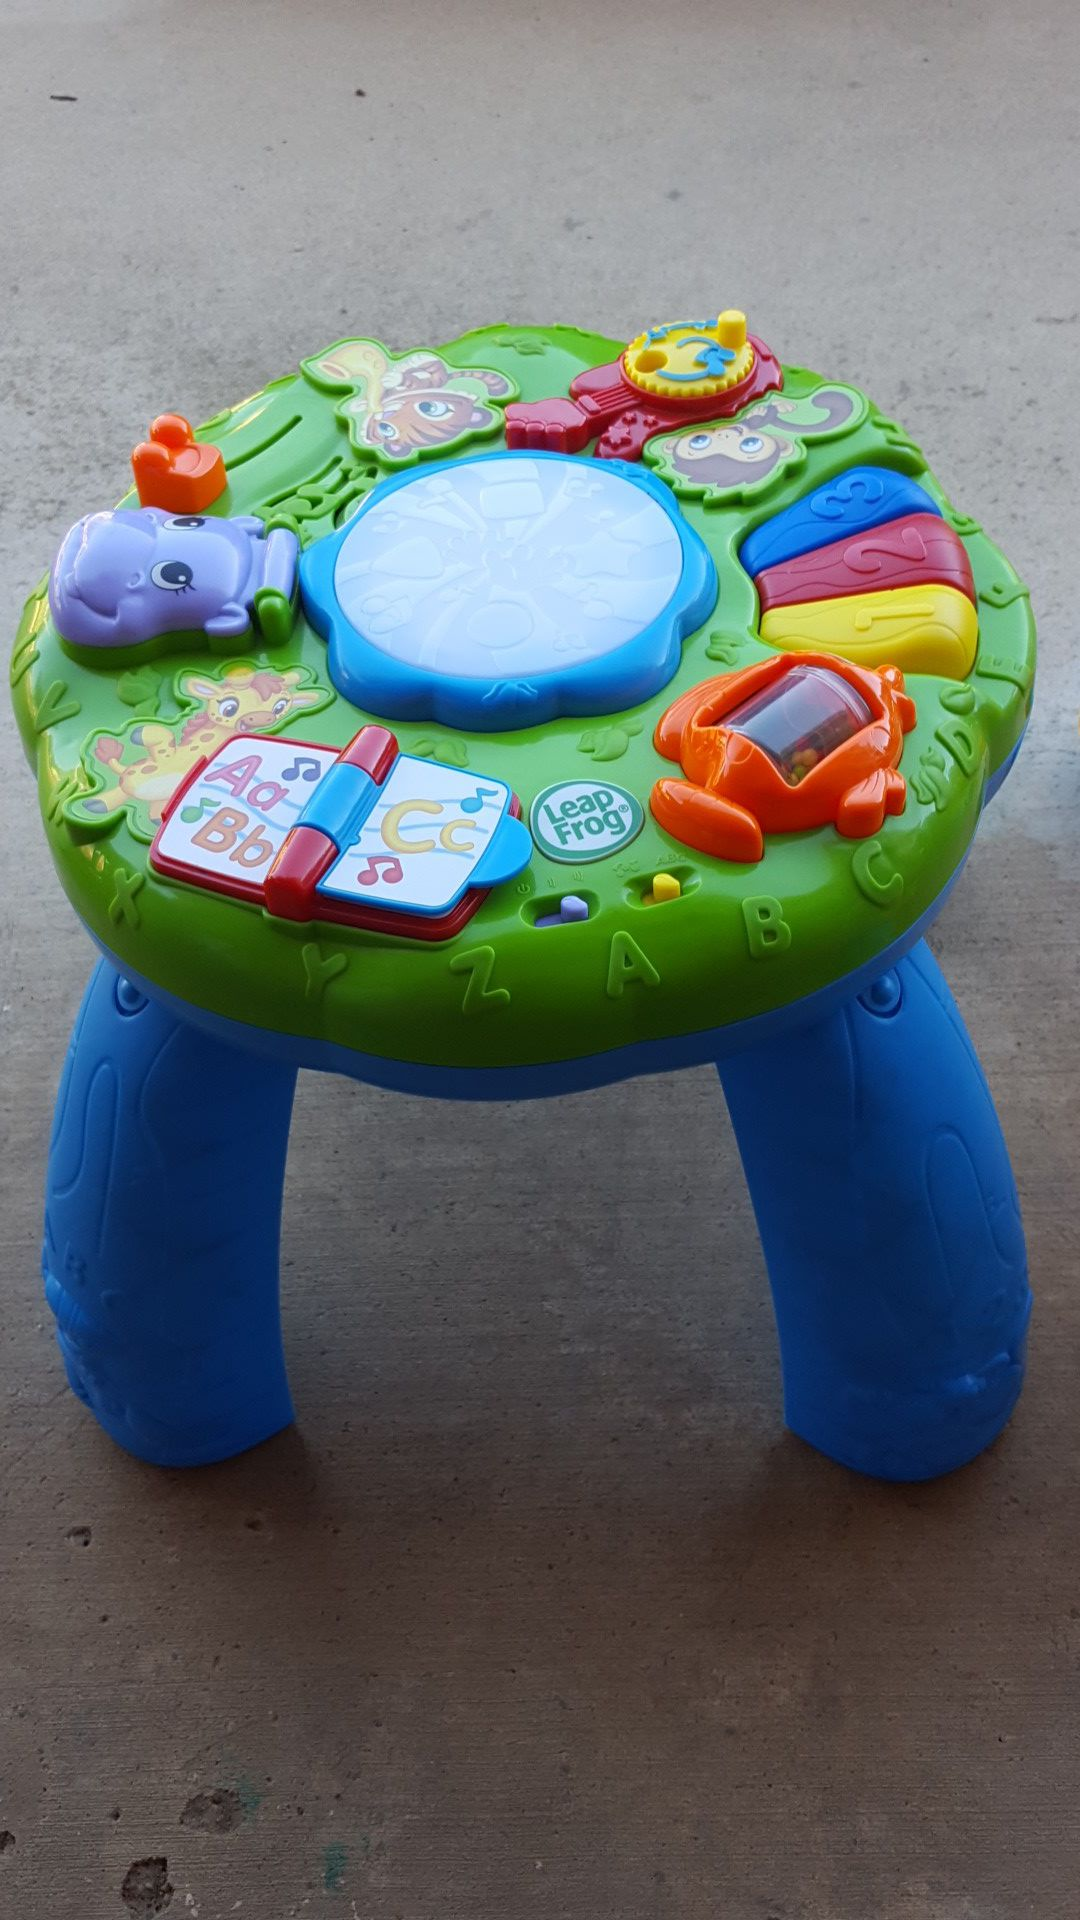 Toys, tech, Fisher price and leap frog